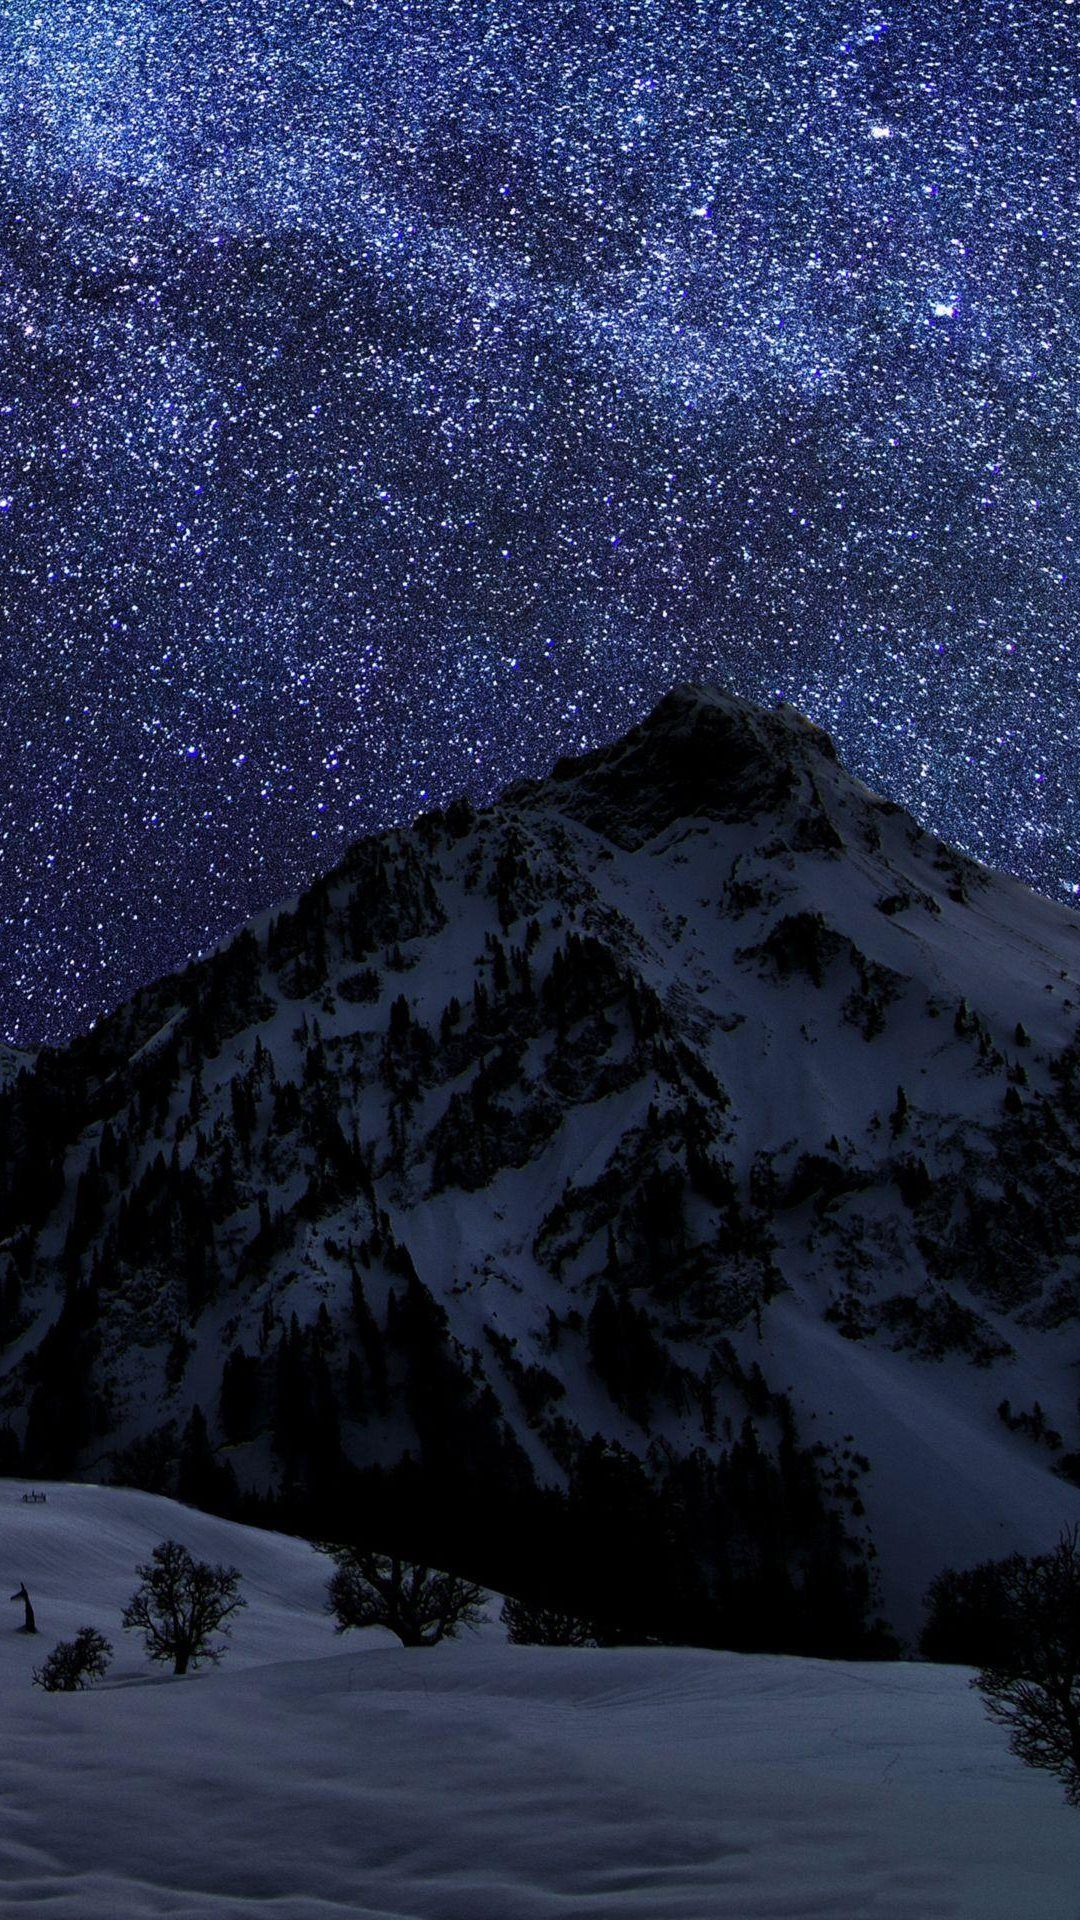 Snow Mountain Night Sky Stars android wallpaper HD Night